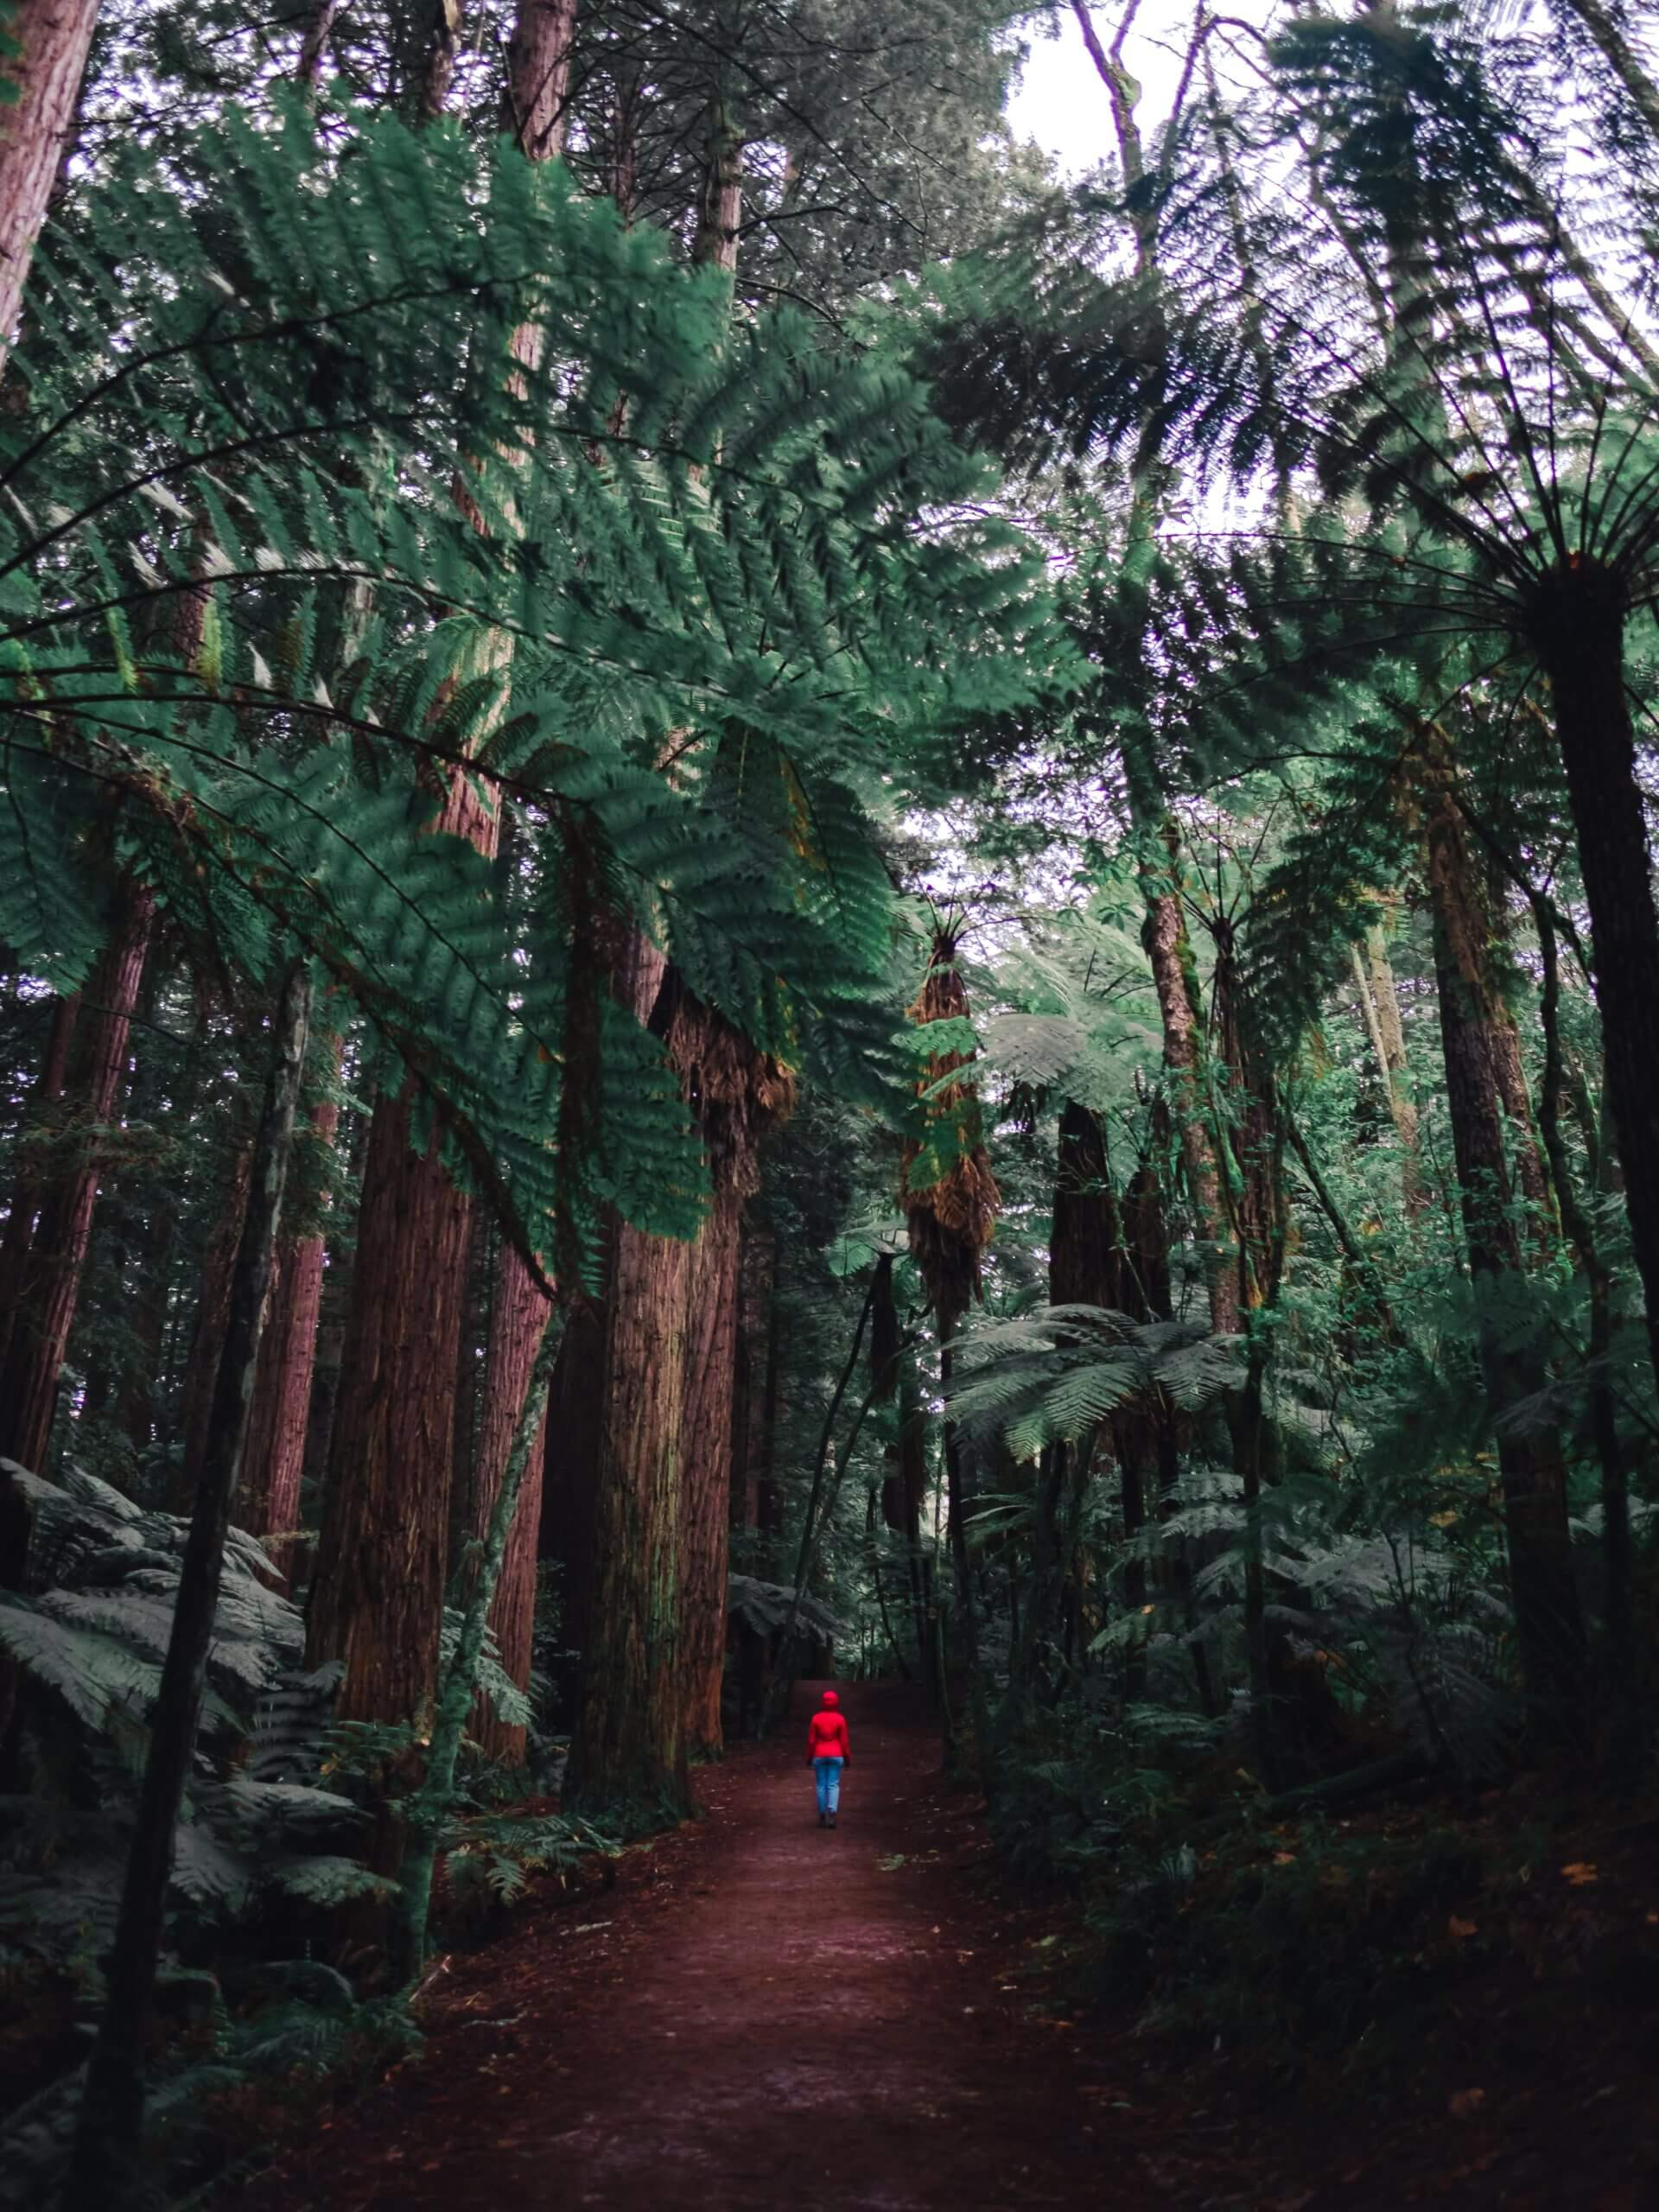 Empty trails of redwood forest trails in Rotorua. September, October, November are the best months to visit New Zealand to have trails all to yourself